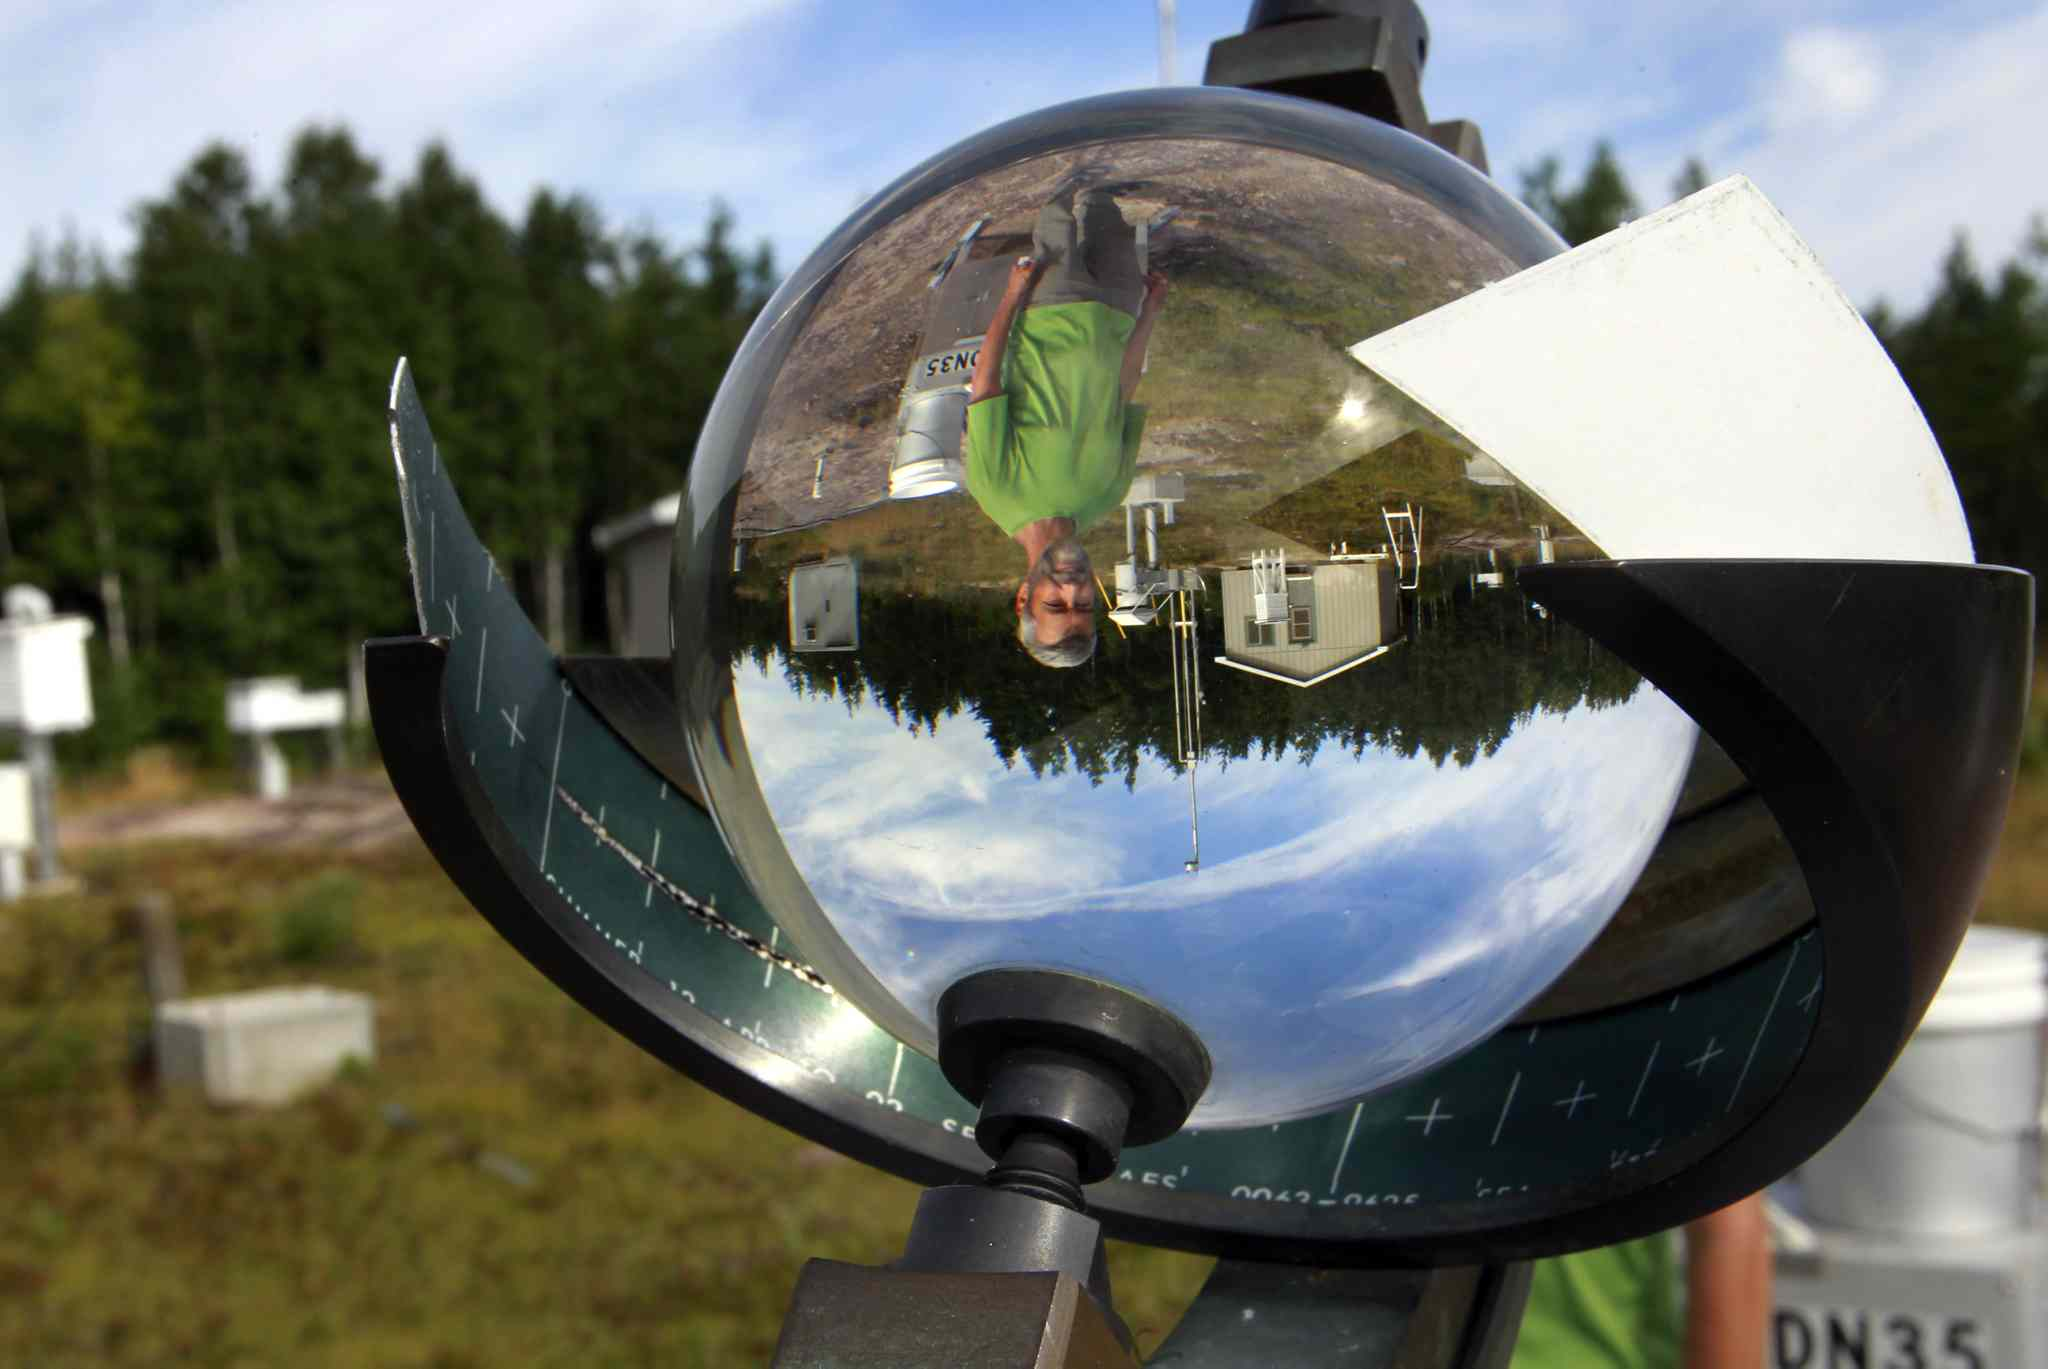 Near the Field Station, Dean McLeod is reflected in the glass sphere of a Campbell-Stokes Sunshine Recorder, one of the many instruments at the Experimental Lakes Area Meteorological and Atmospheric Chemistry Monitoring Site established in 1969.